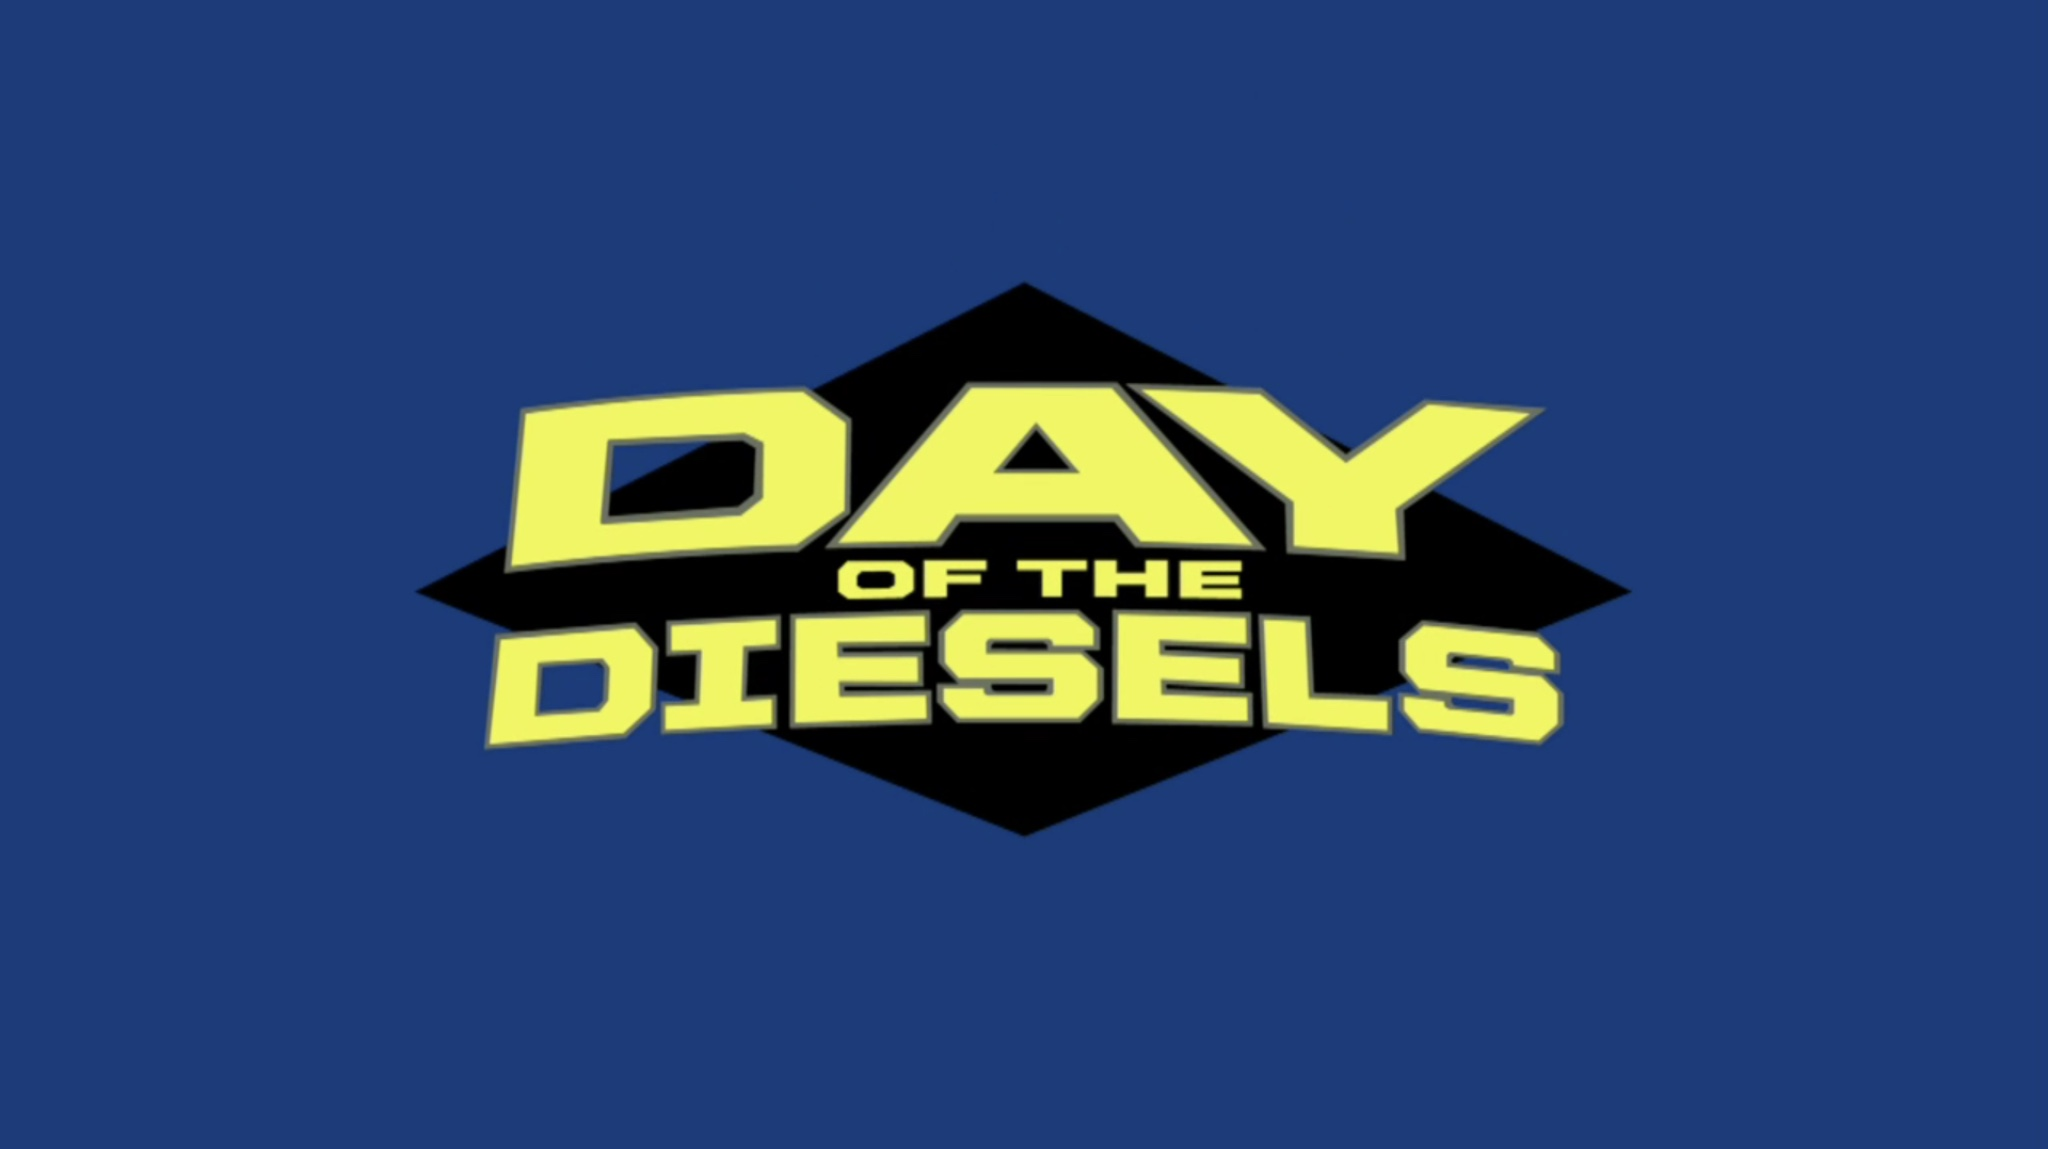 Day of the Diesels/Transcript